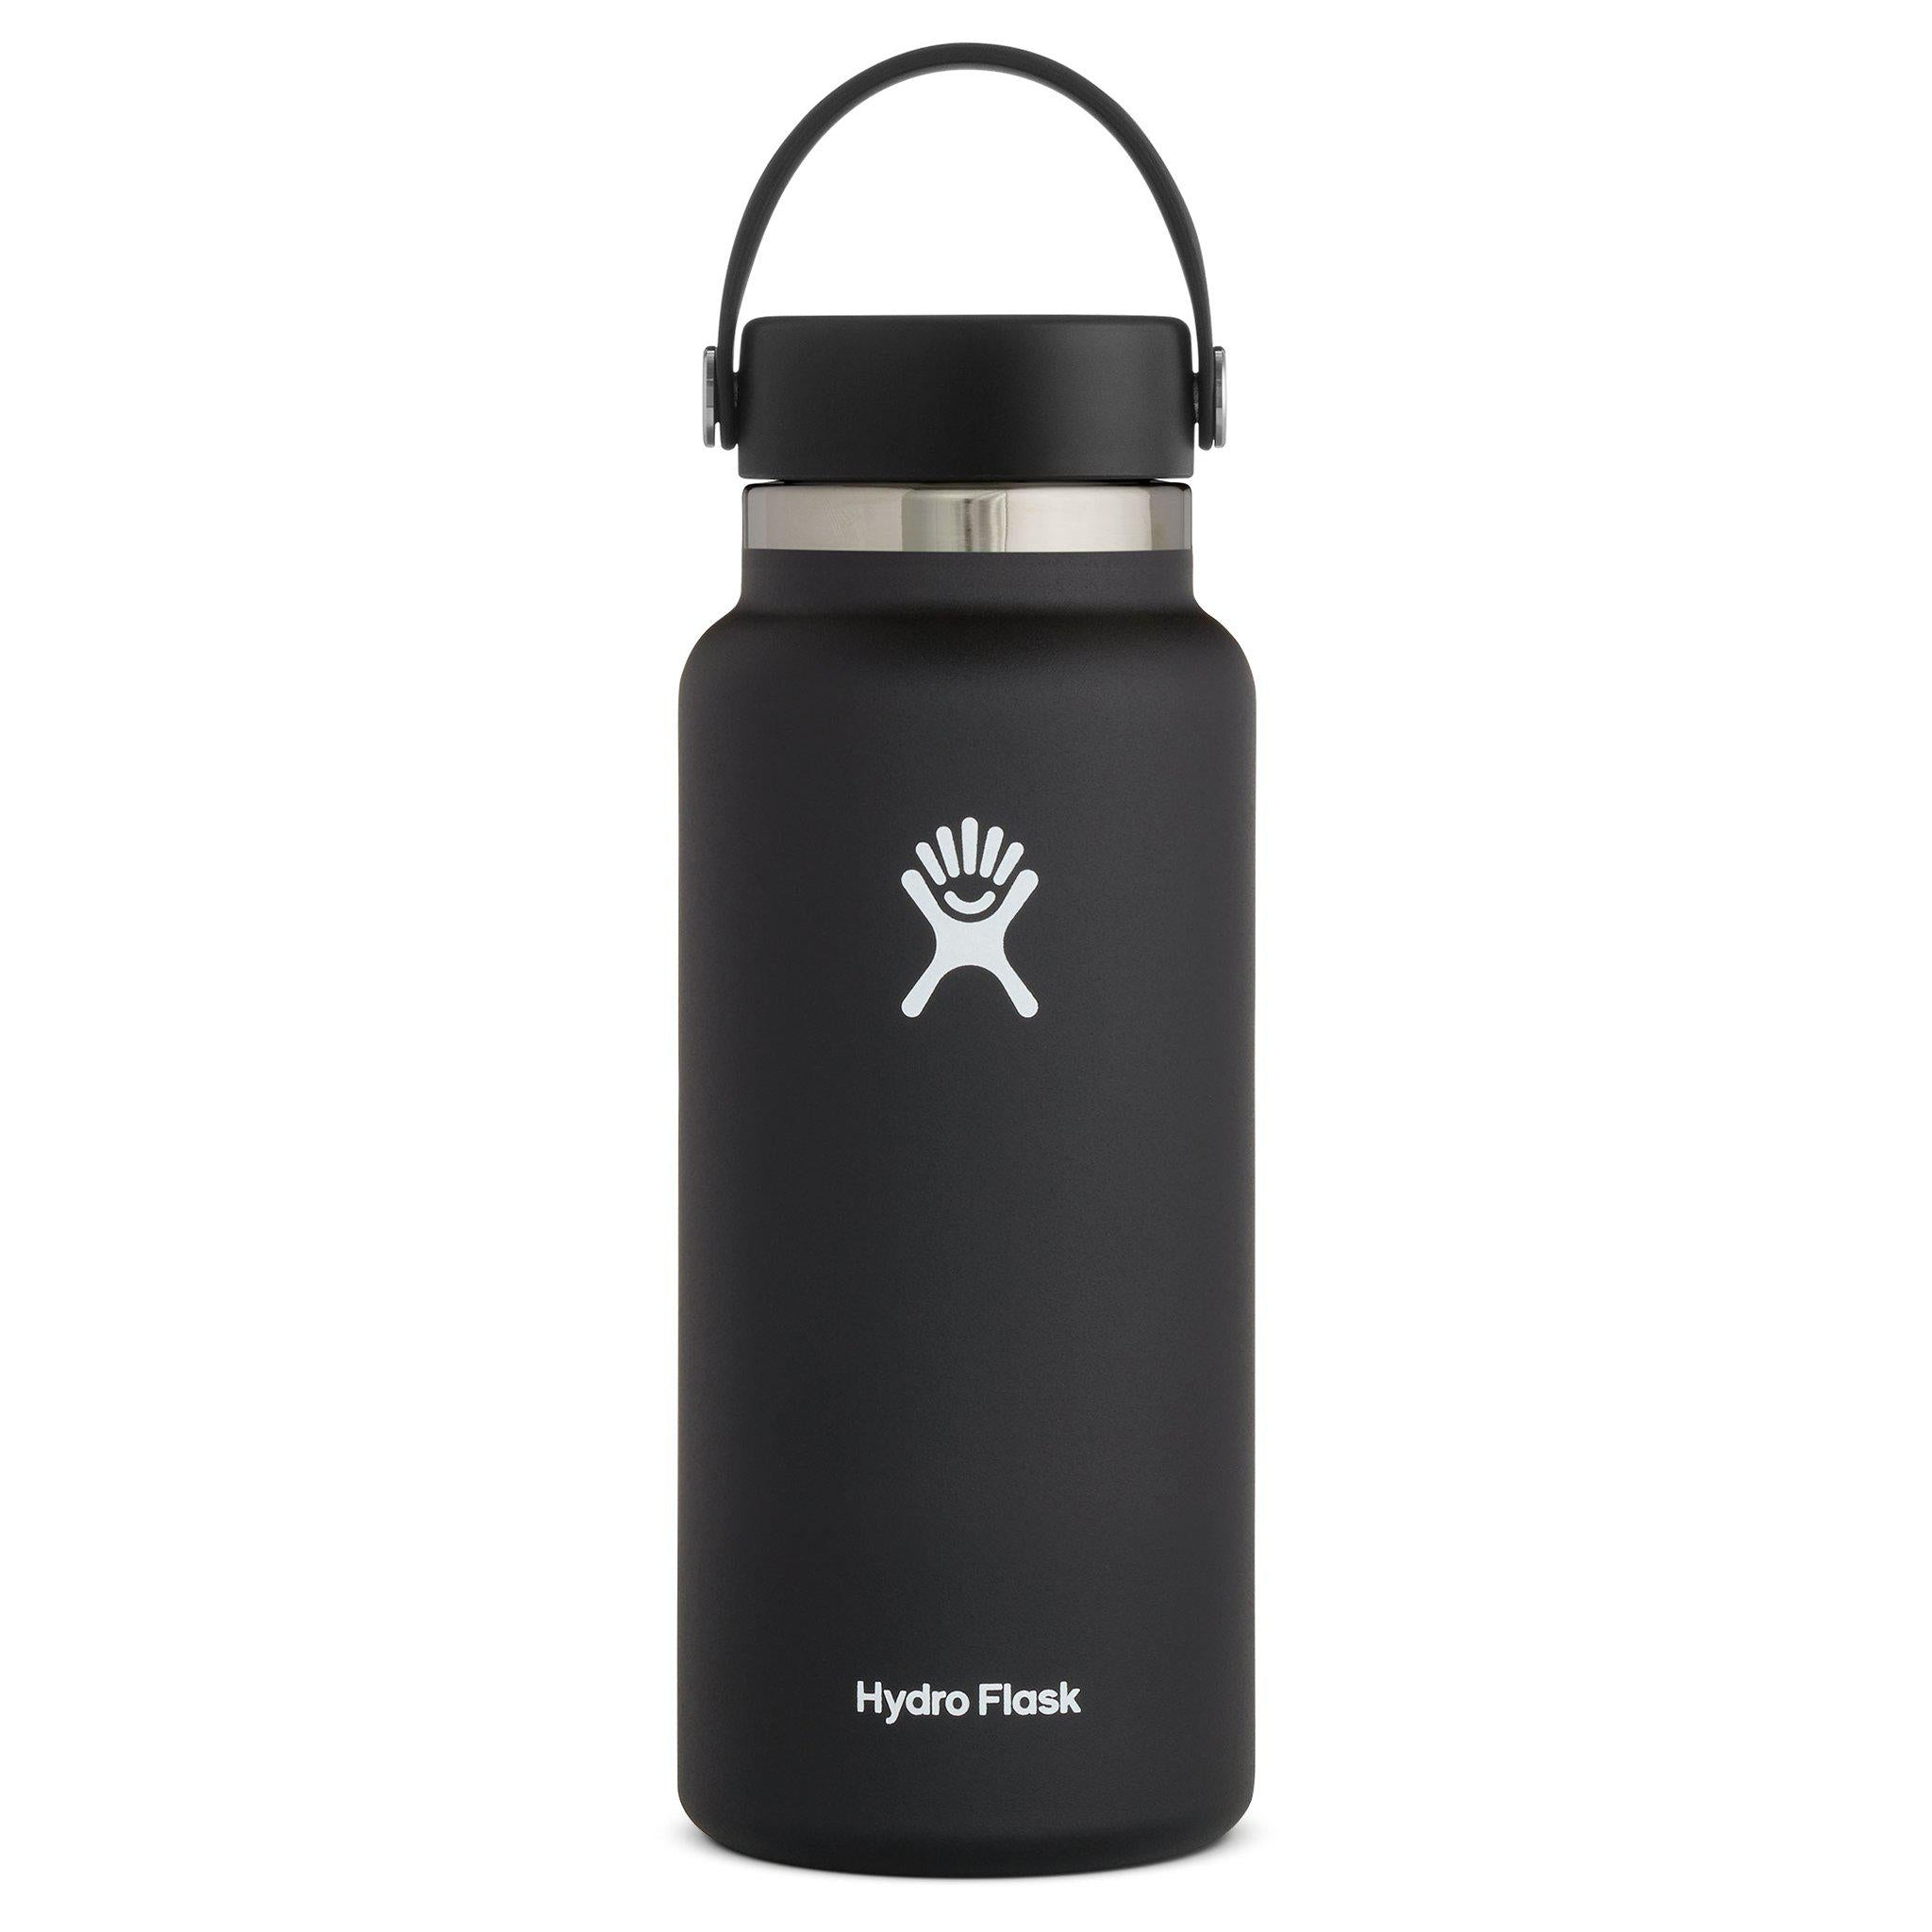 Hydro Flask 32oz Wide Mouth Water Bottle w/ Flex Cap